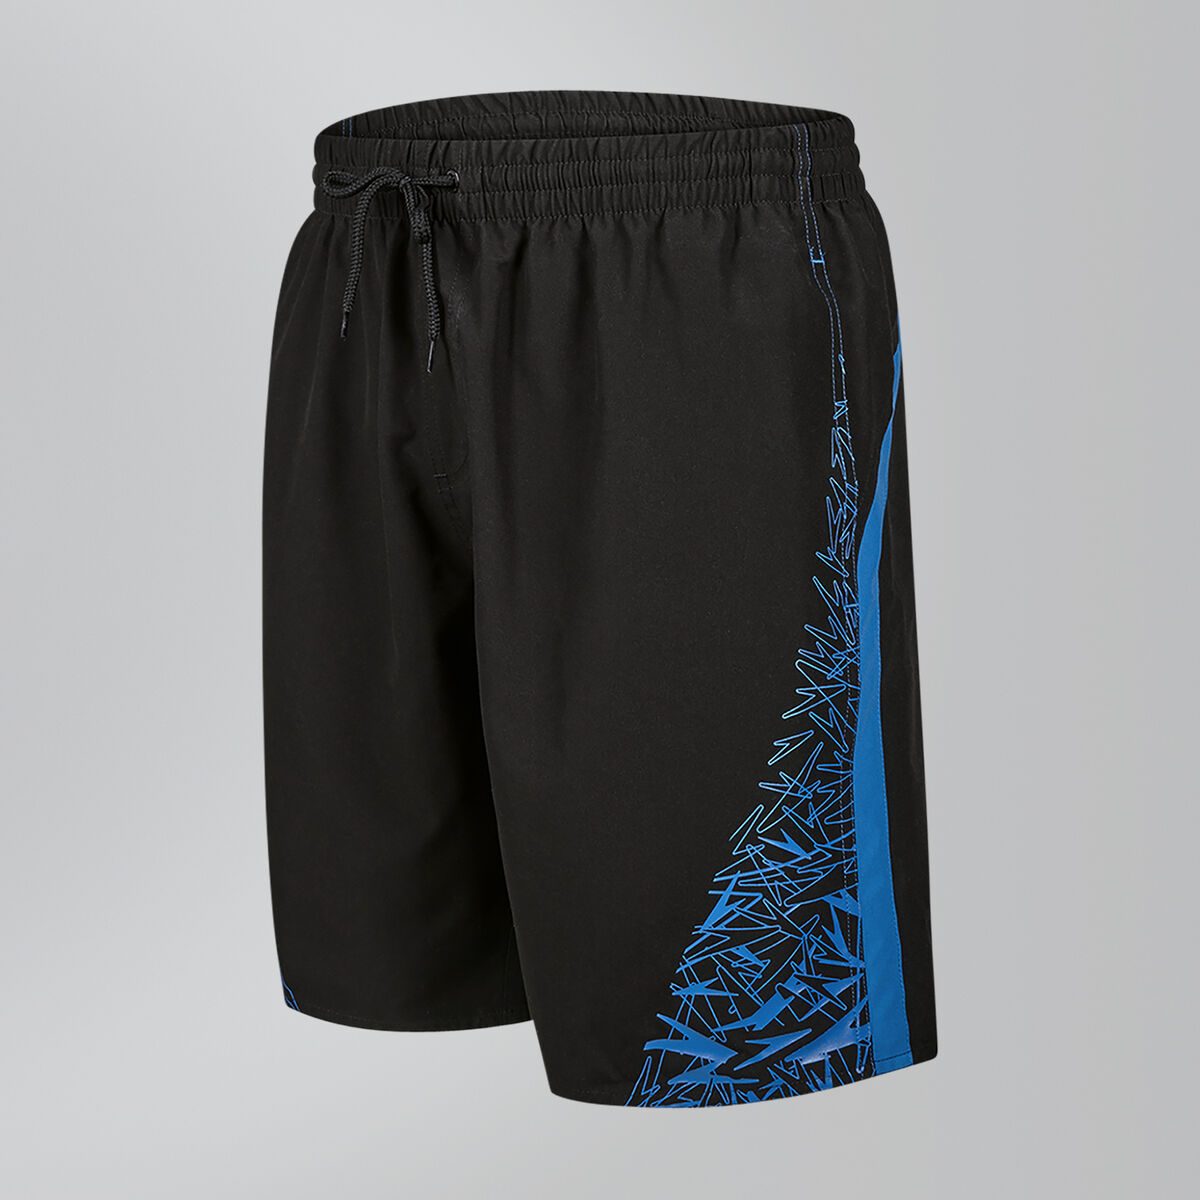 "Boom Yoke Splice 18"" Swim Shorts"